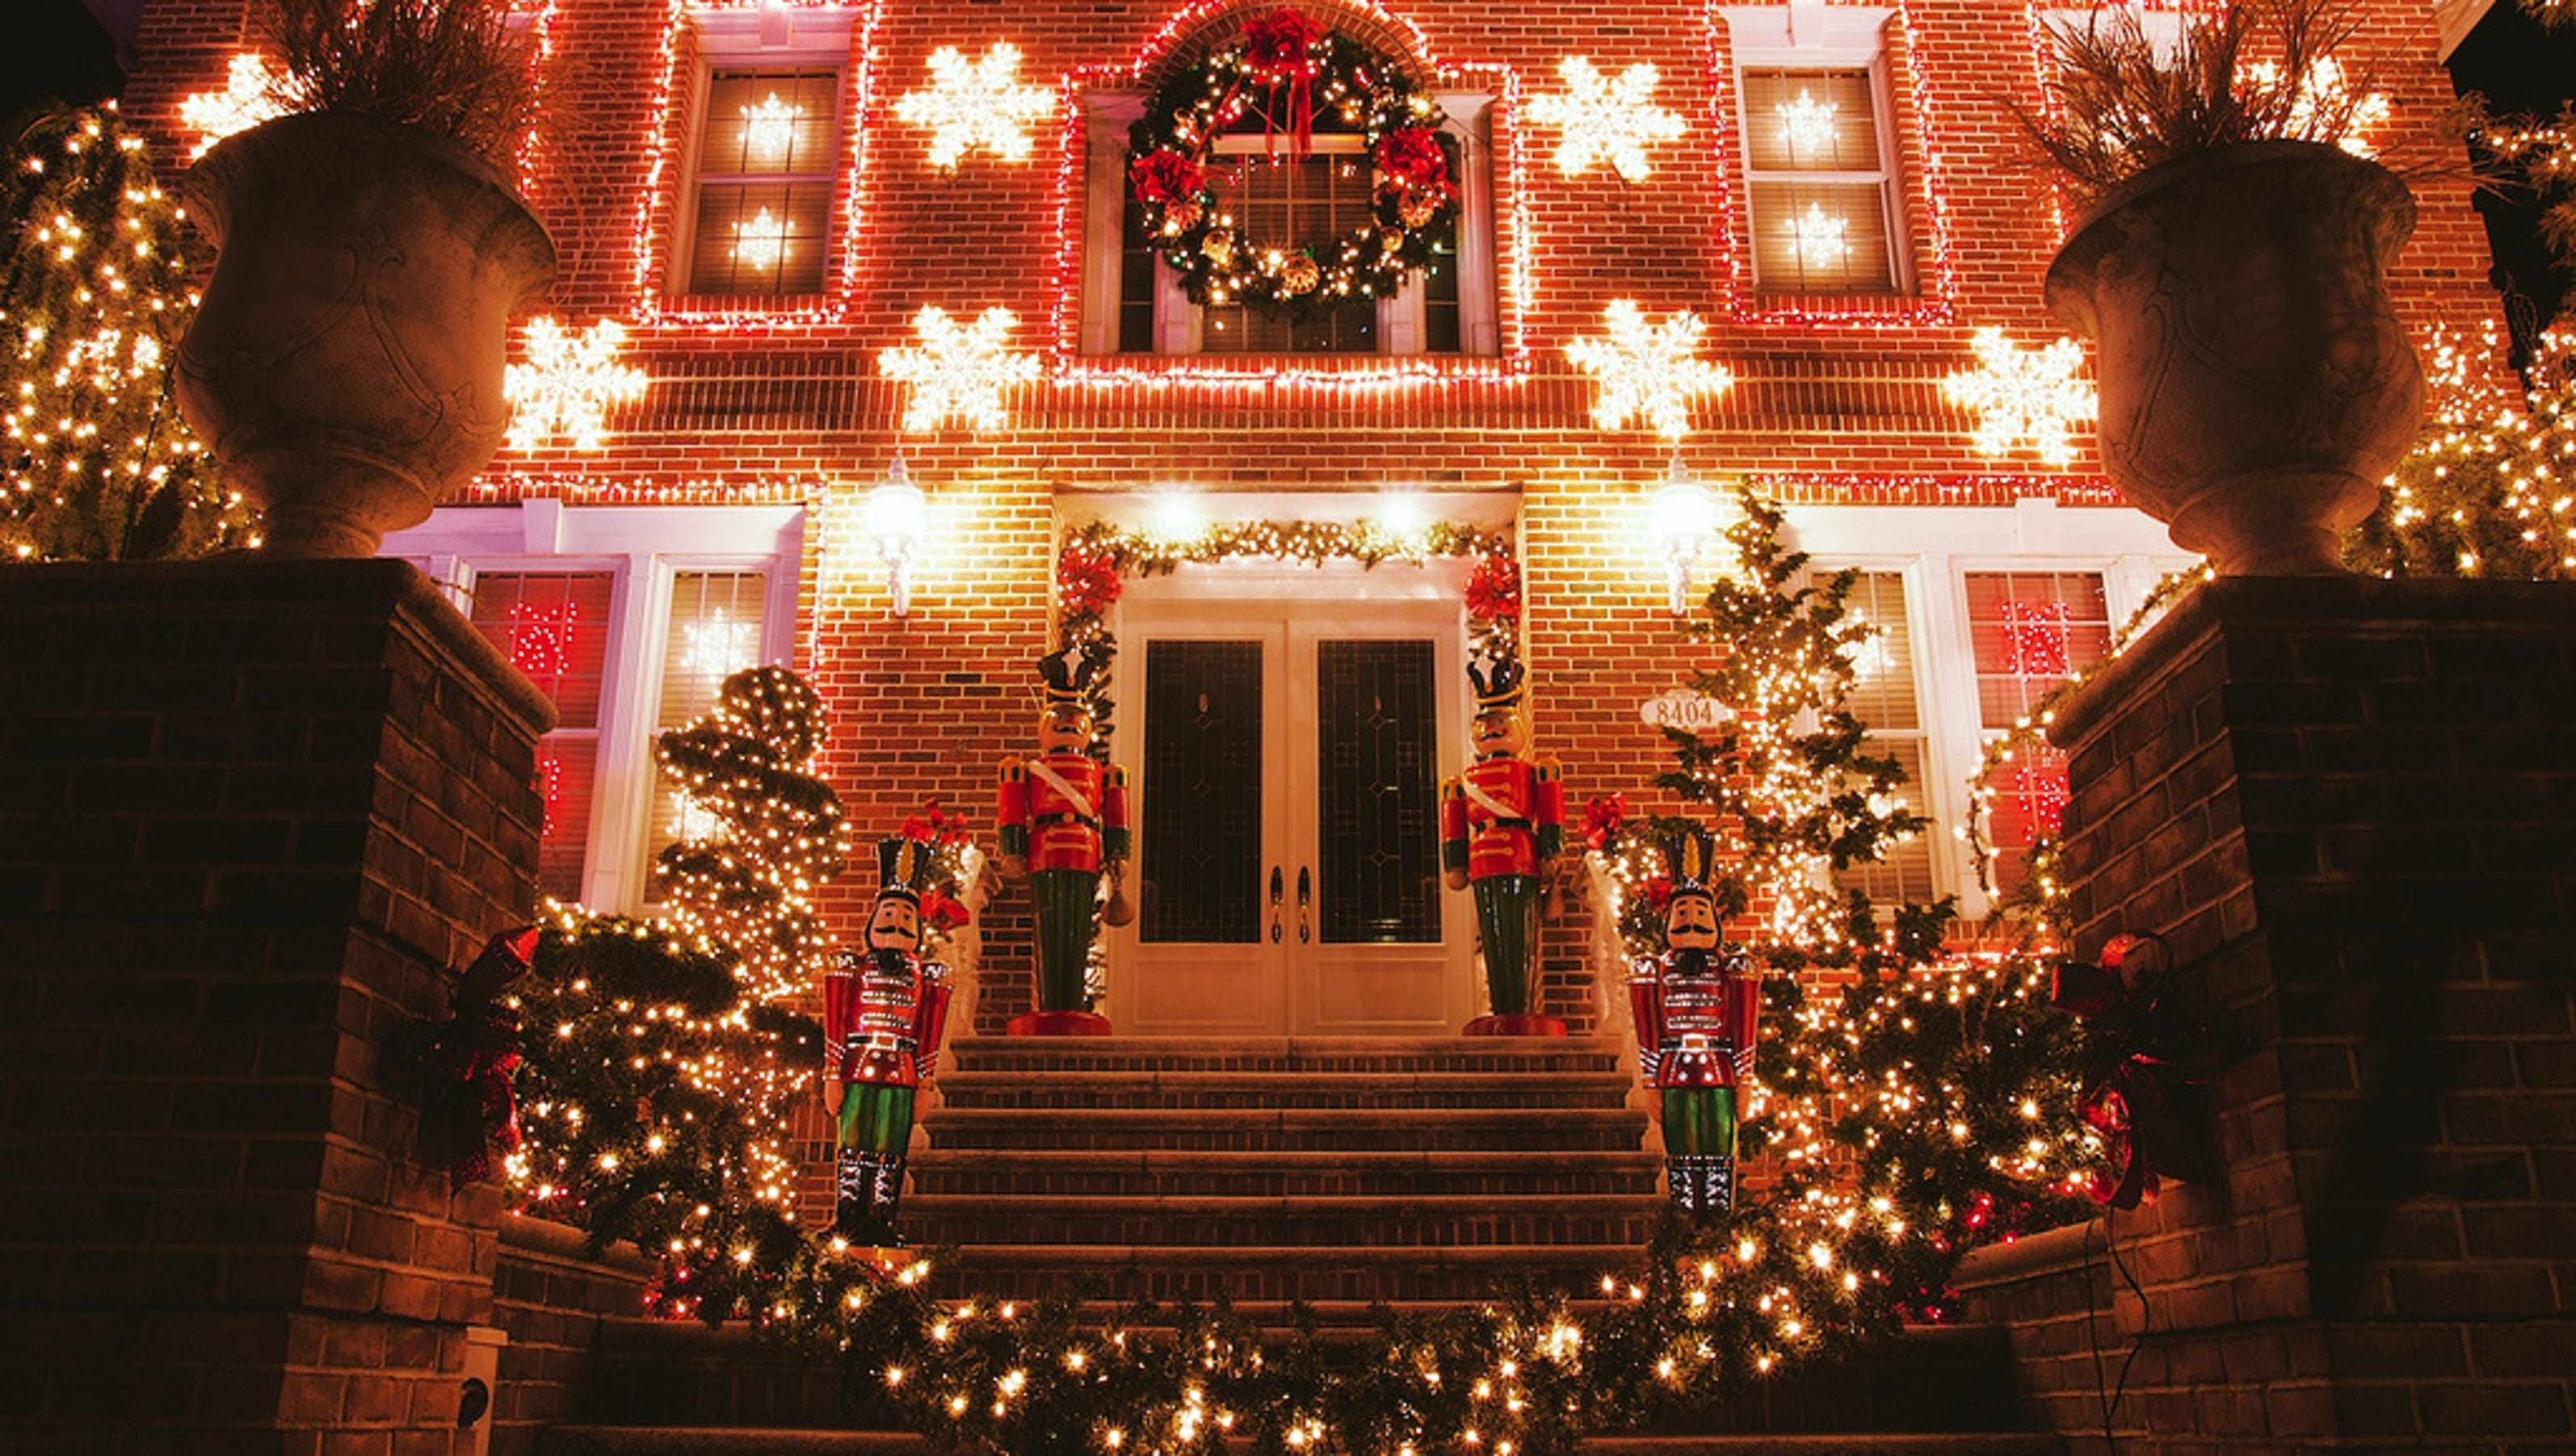 Enter USA TODAY's Holiday Lights contest and win $5,000!